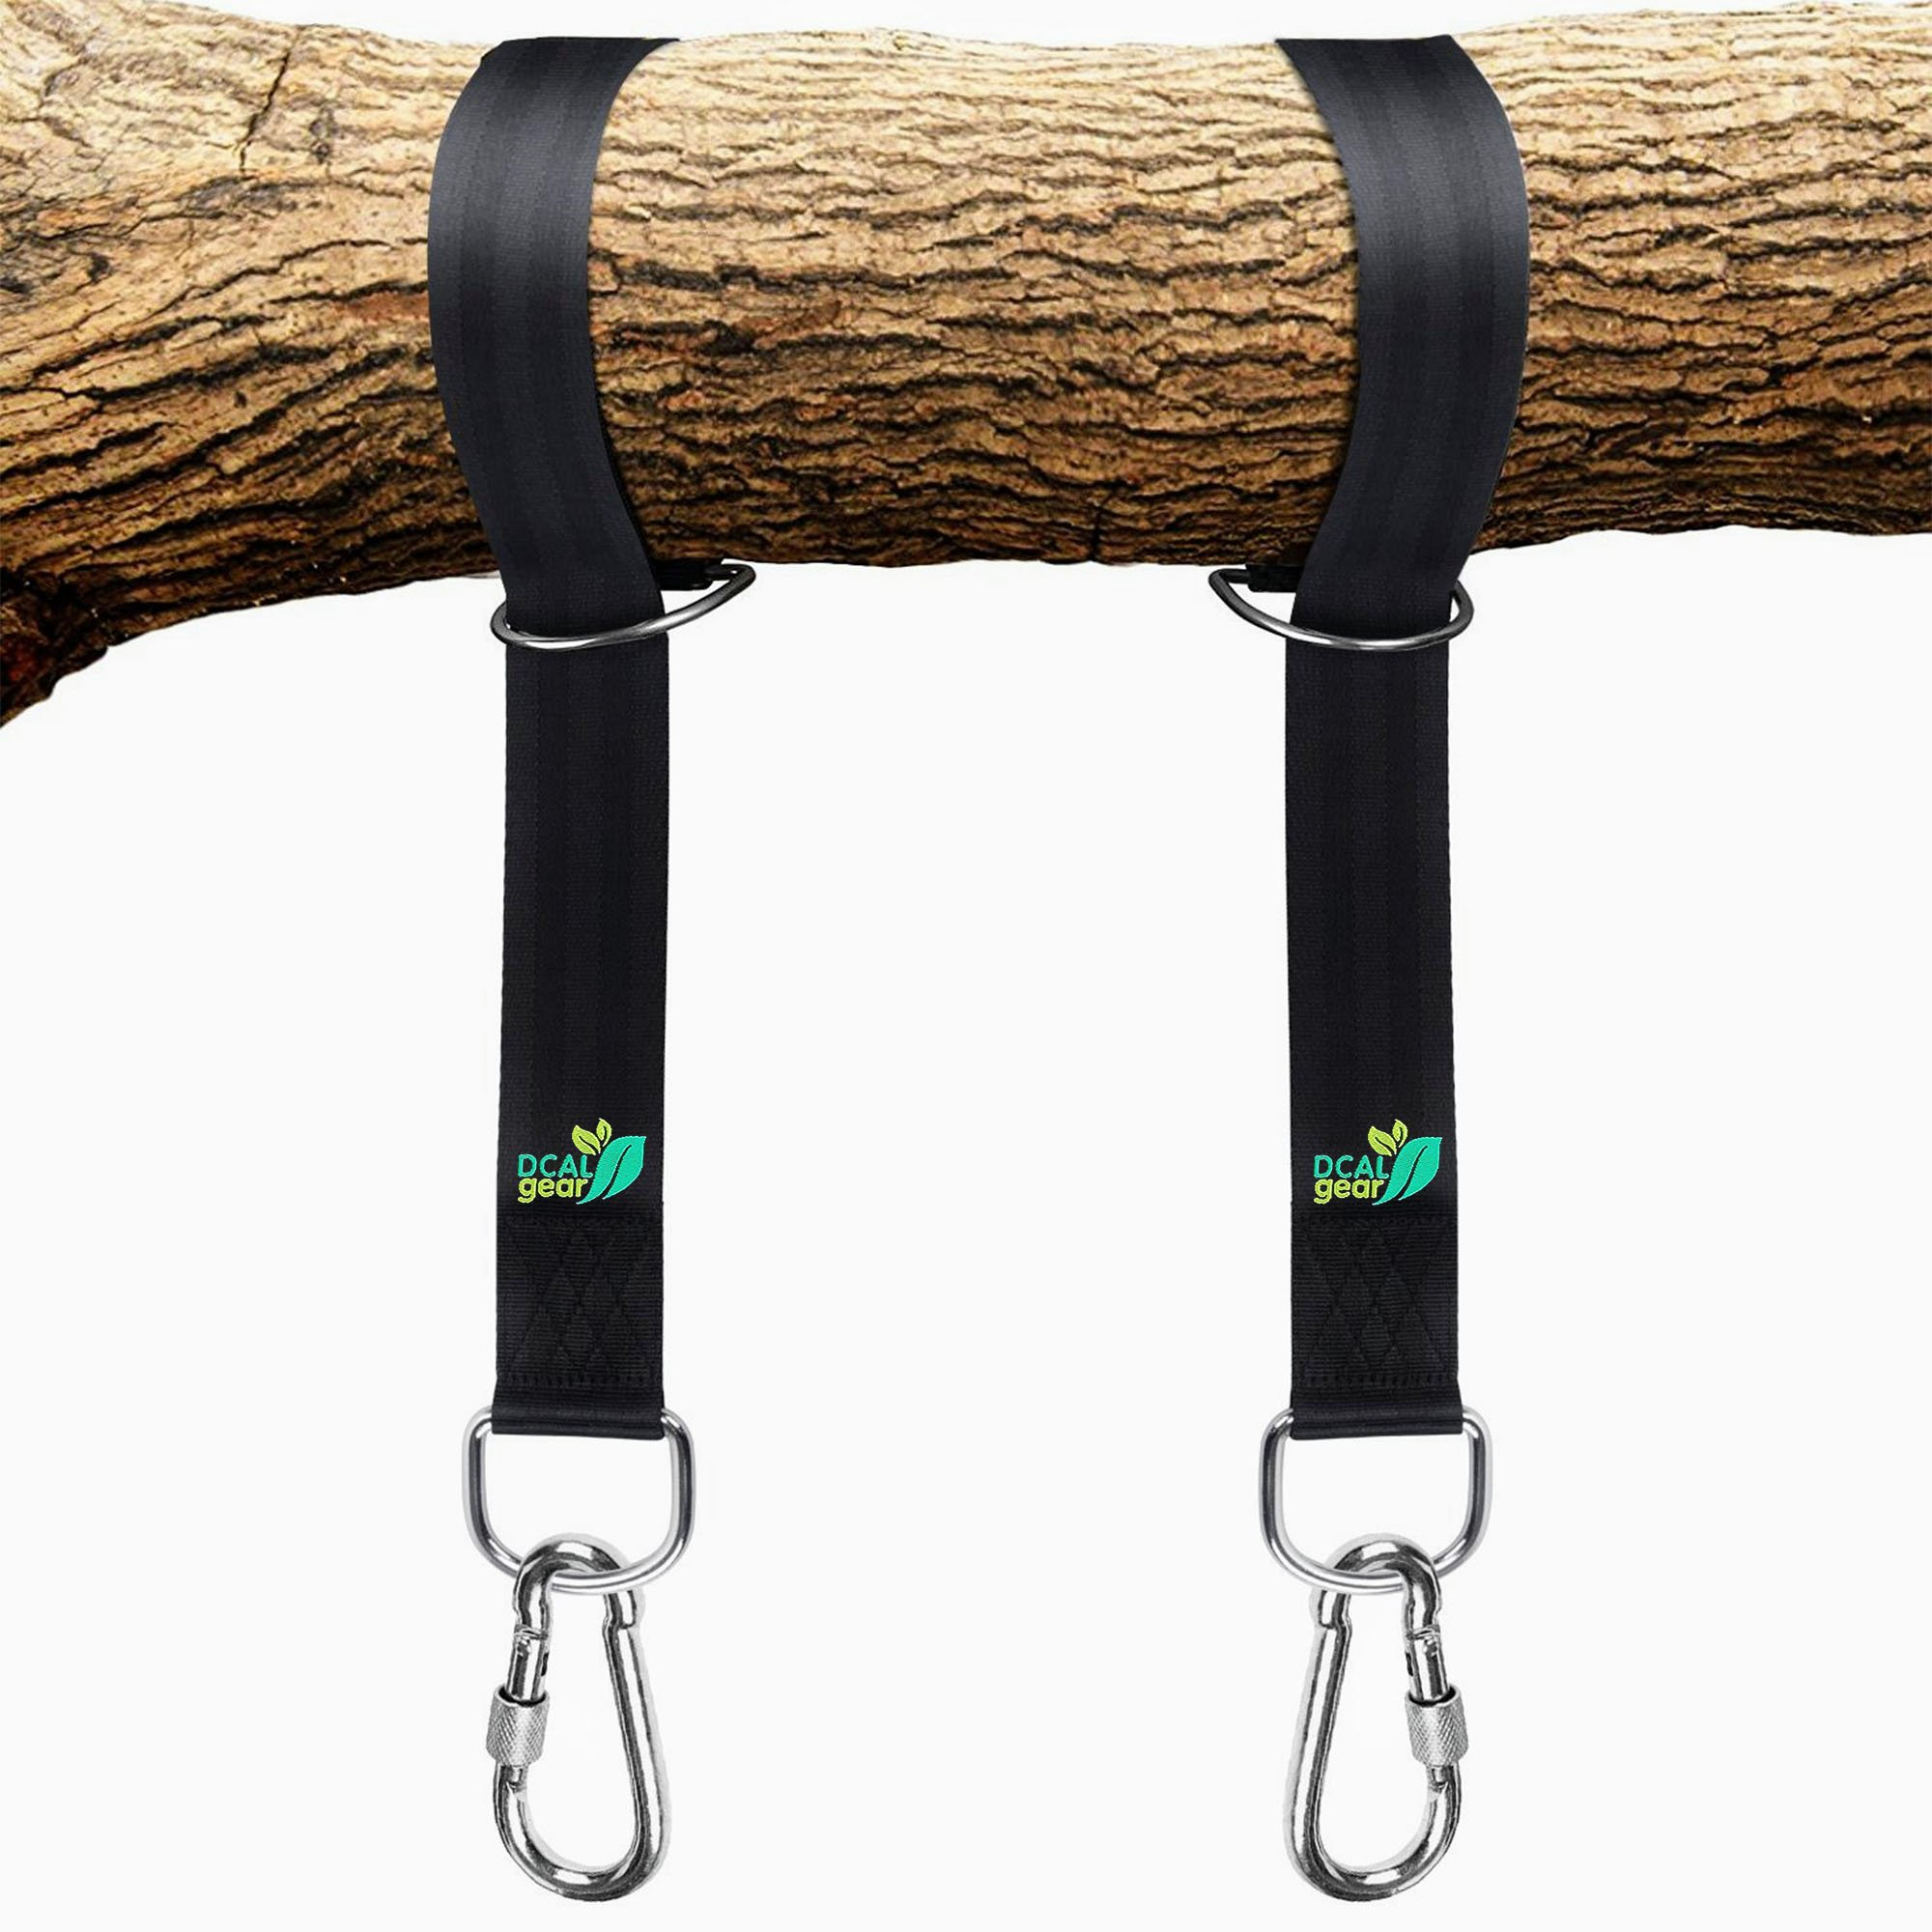 Best Tree Swing Hanging Kit - Easy 30 Sec Install on Outdoor Toys - Two 5 ft Tree Straps Hold 2000 lb - Safe, Large Carabiners & D Rings - Fits Hammocks & Most Swing Seats - Better Than Chain or Rope! by DCAL Gear (Image #1)